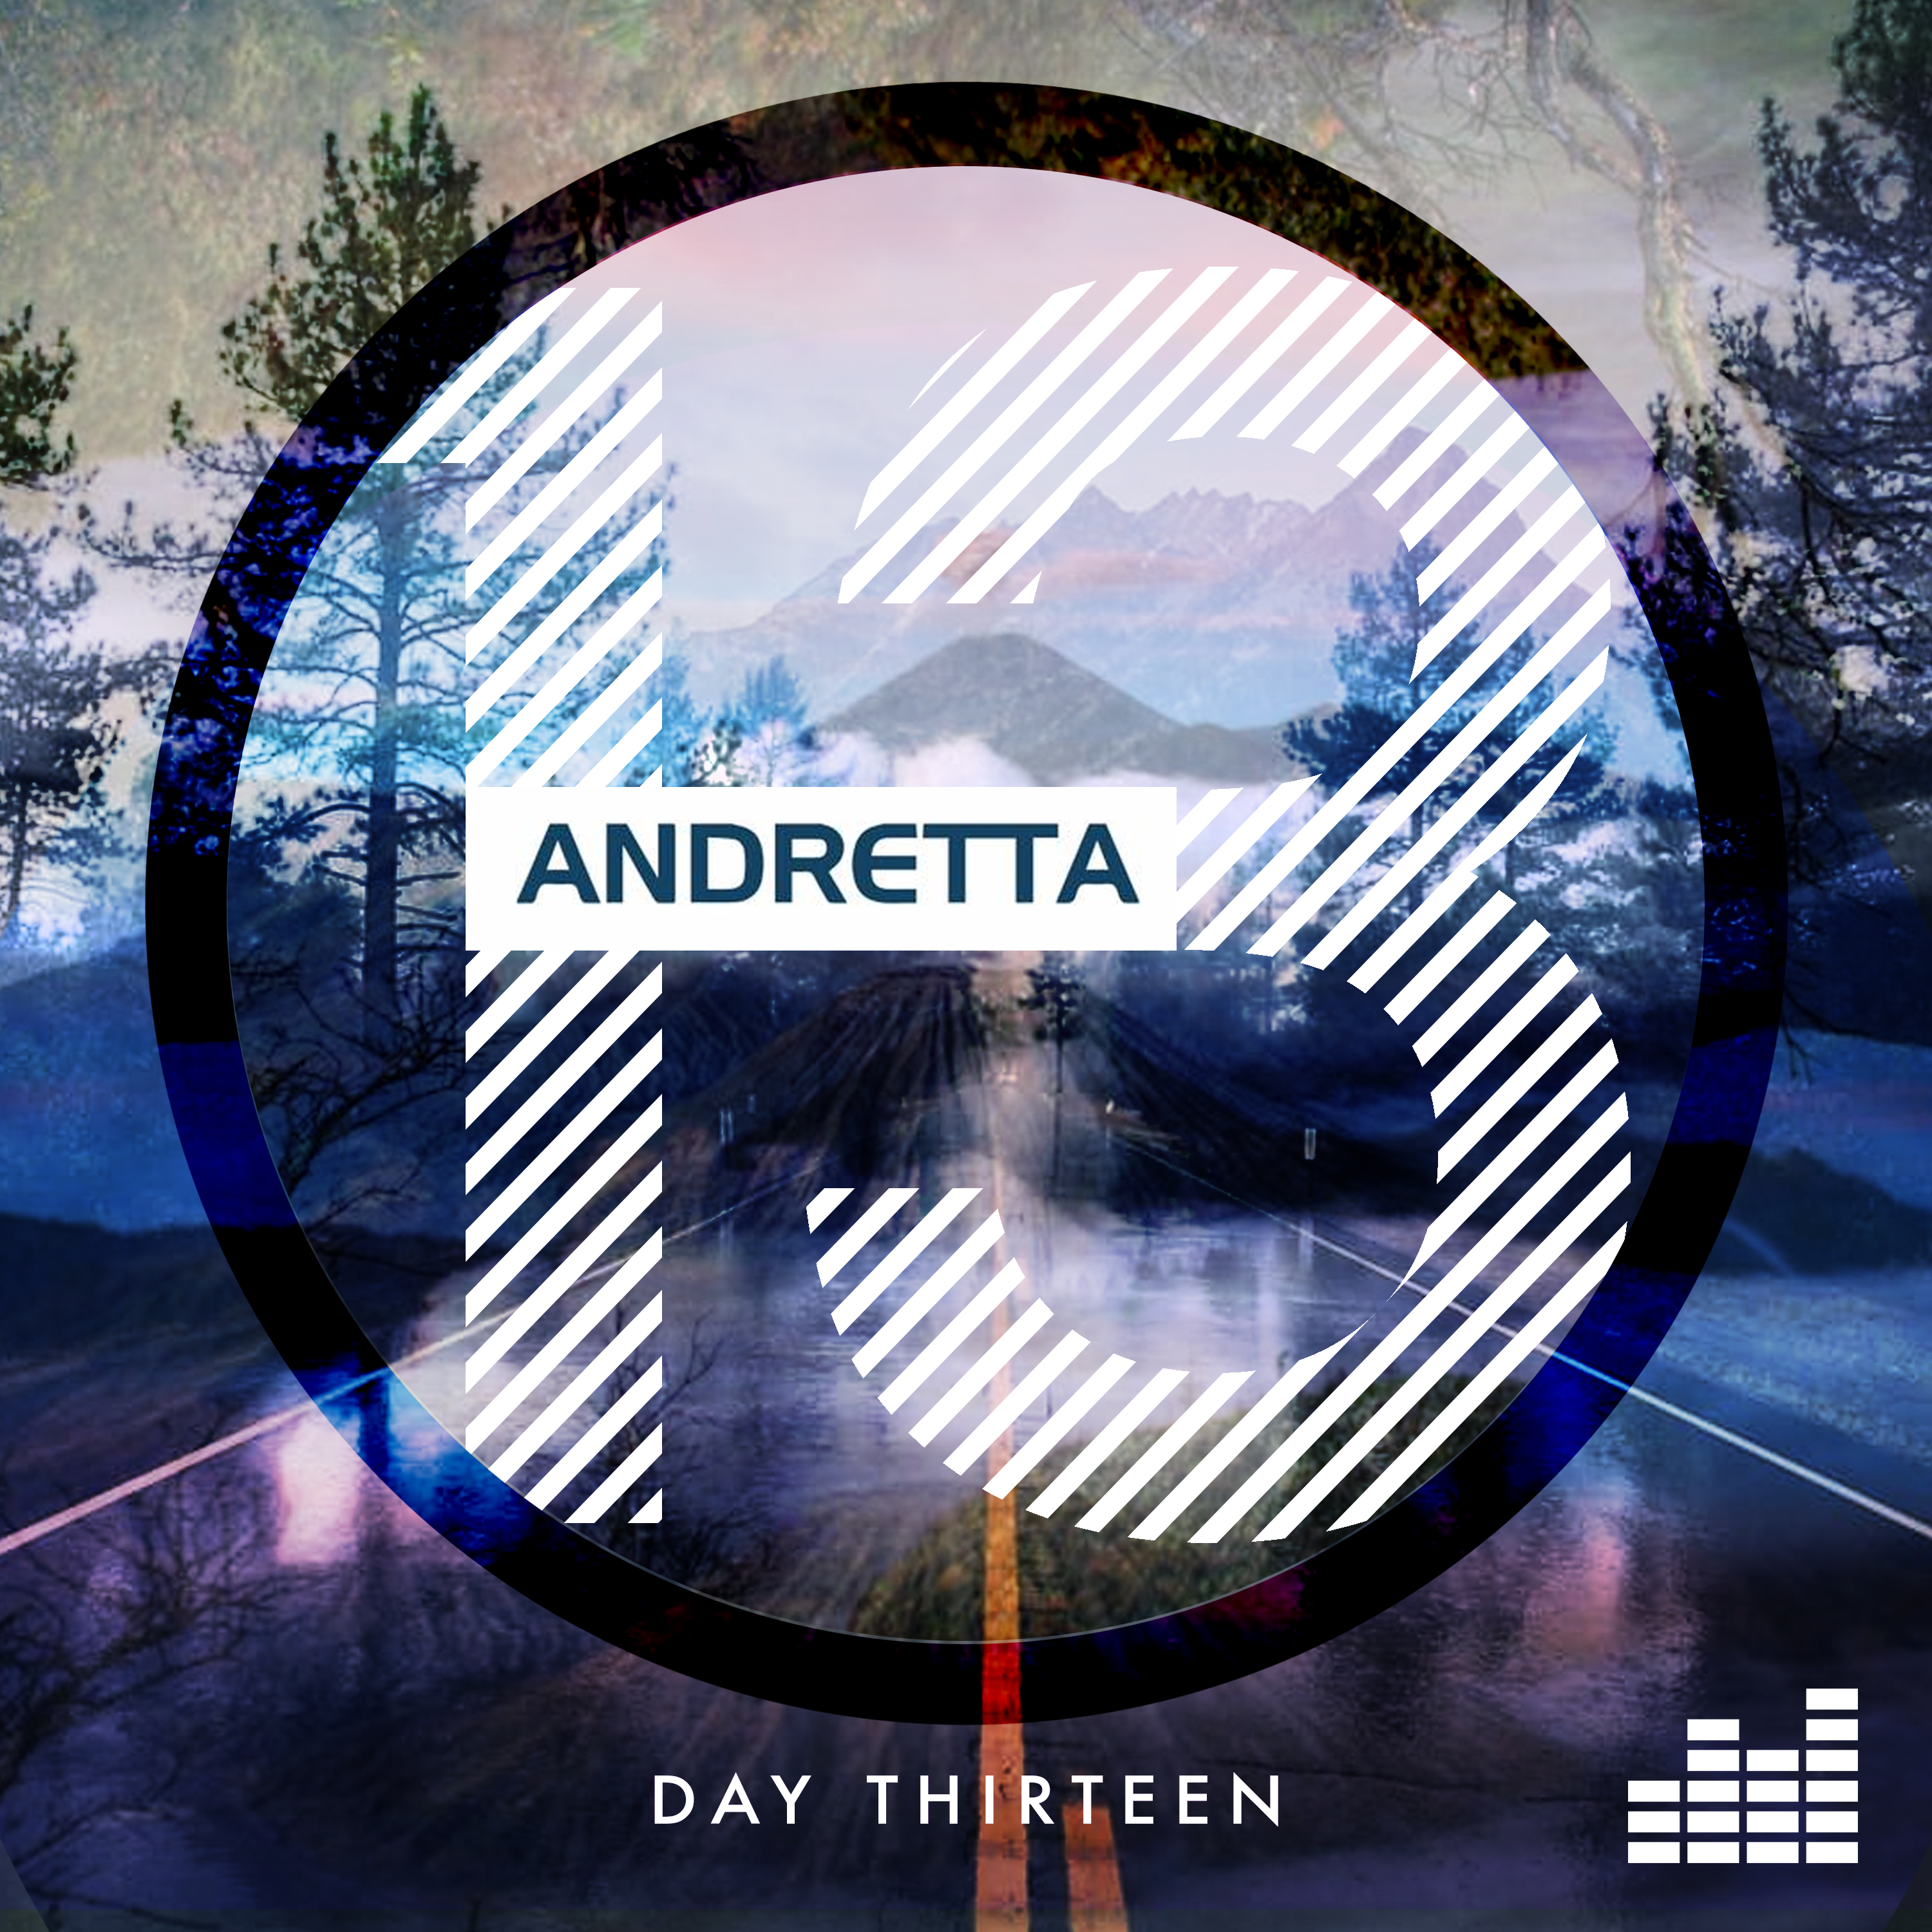 andretta_day_thirteen_artwork.jpg